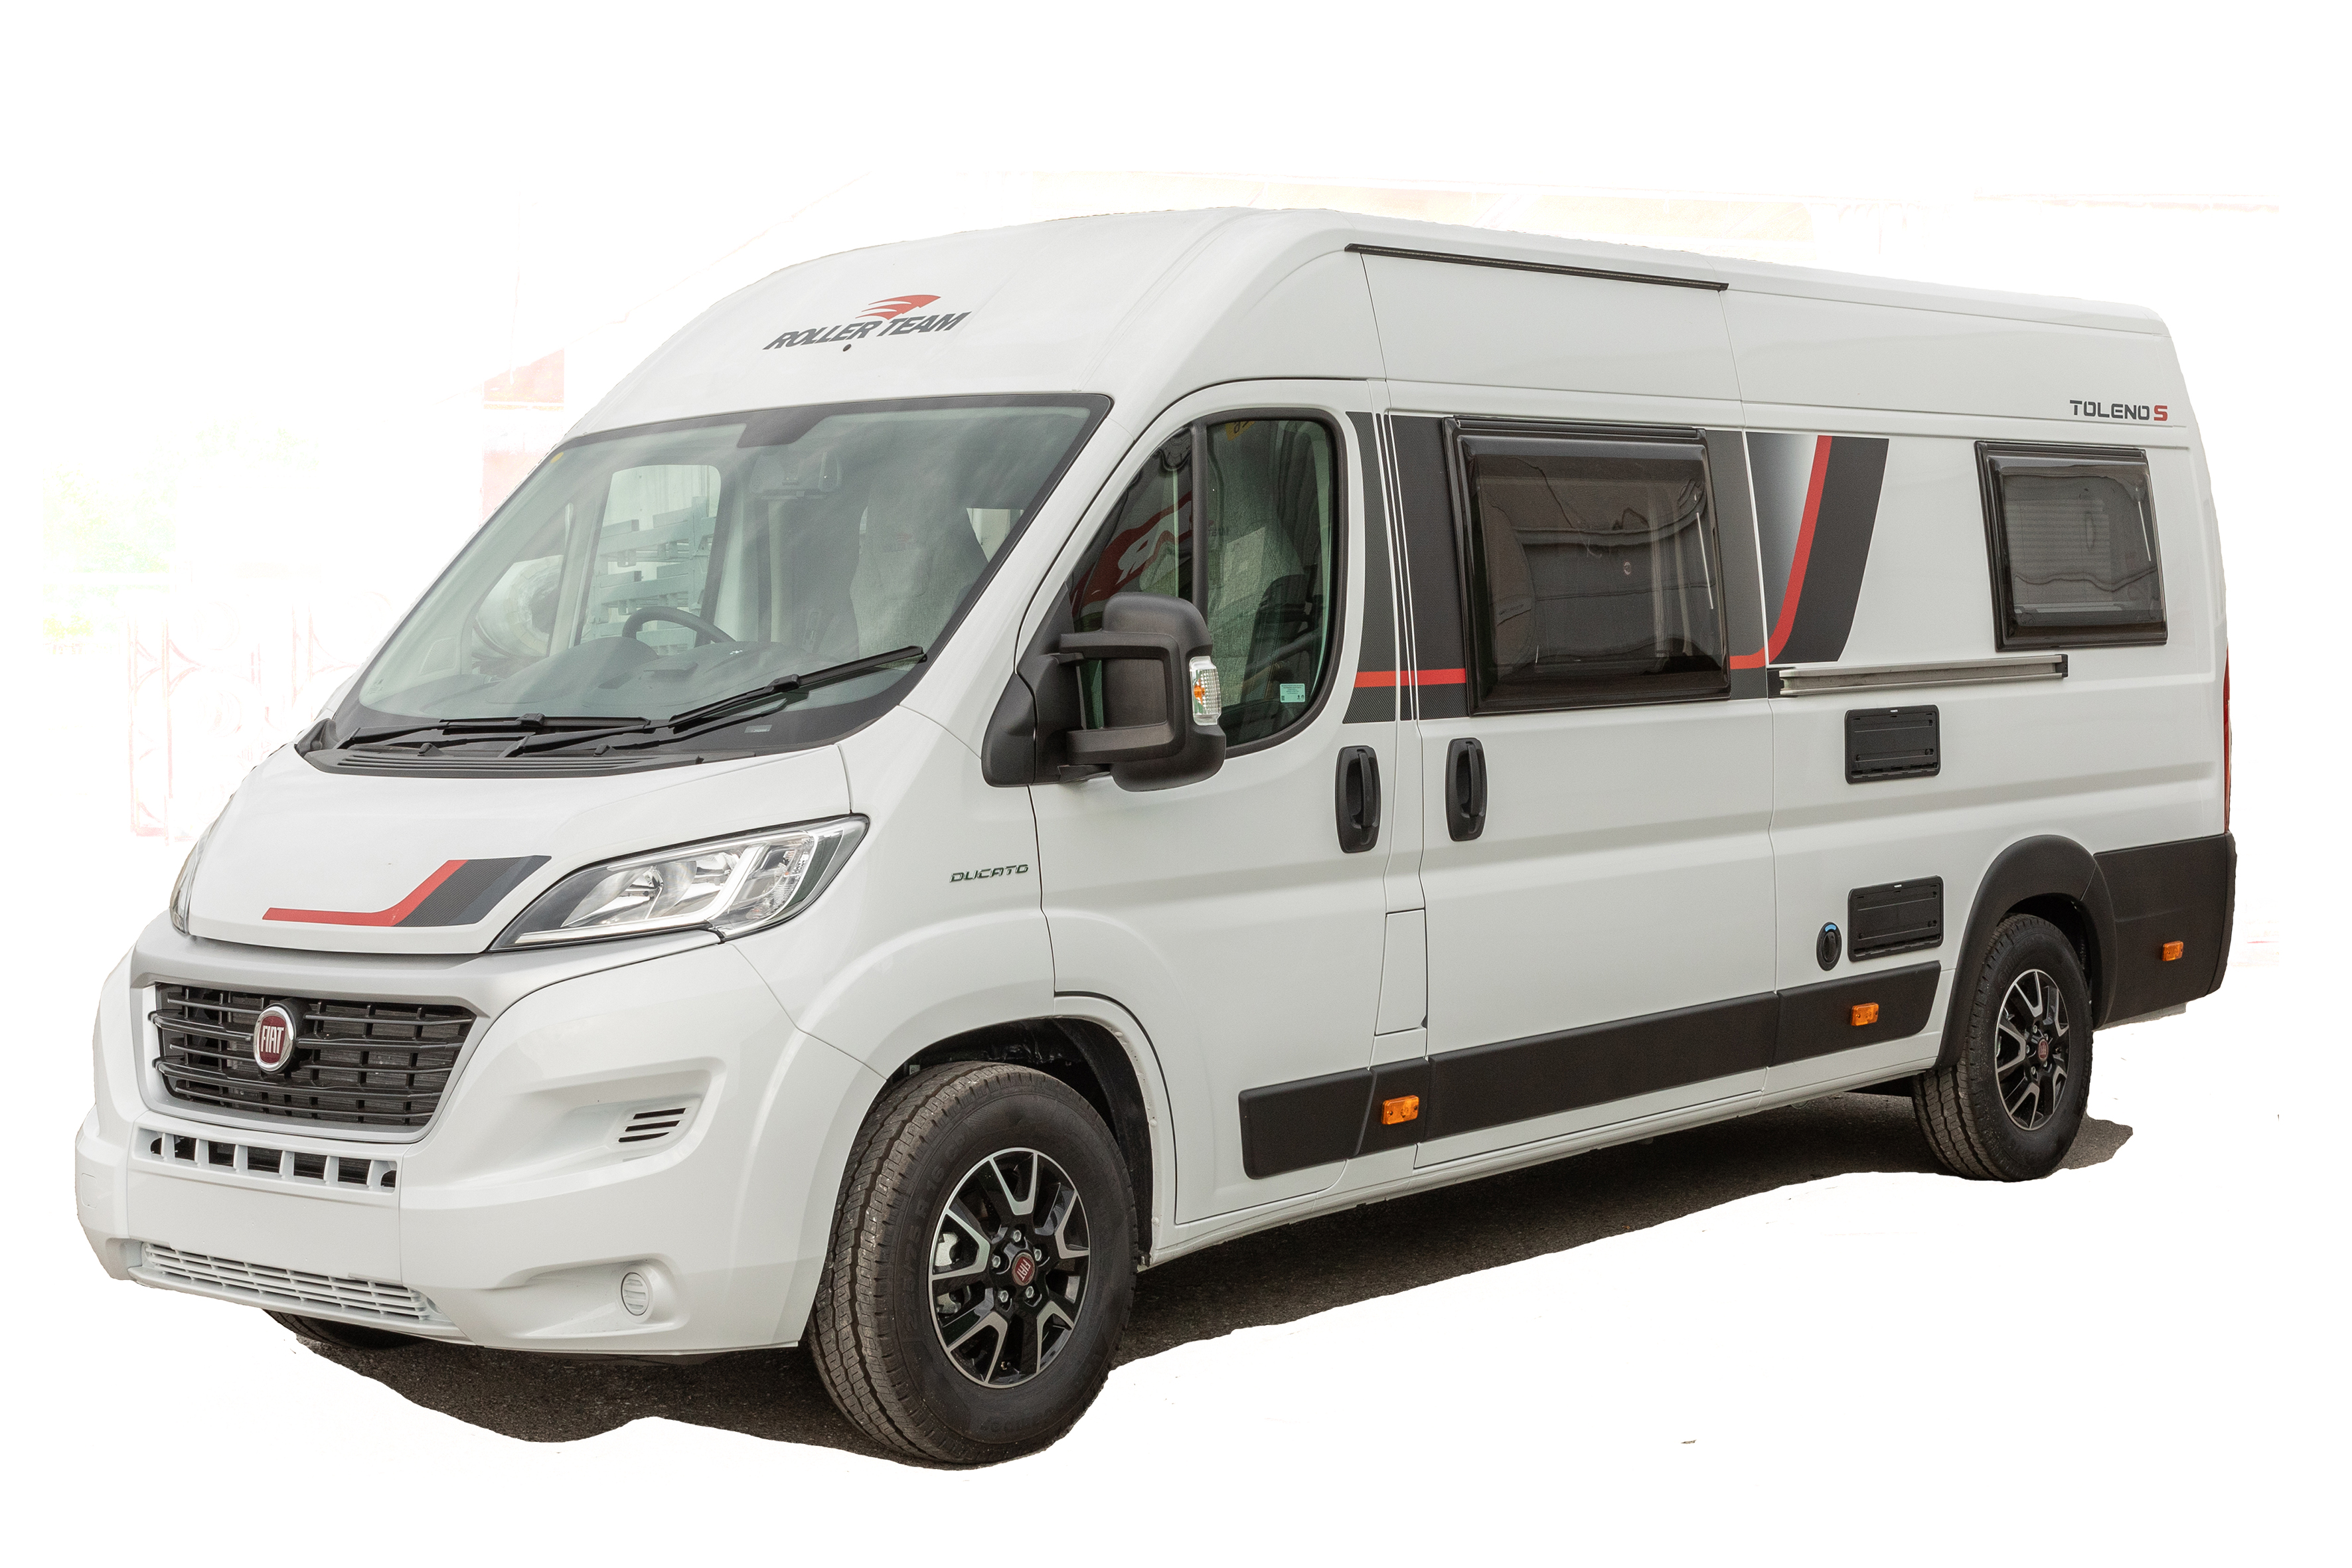 2020 Roller Team Toleno S New Motorhome side view